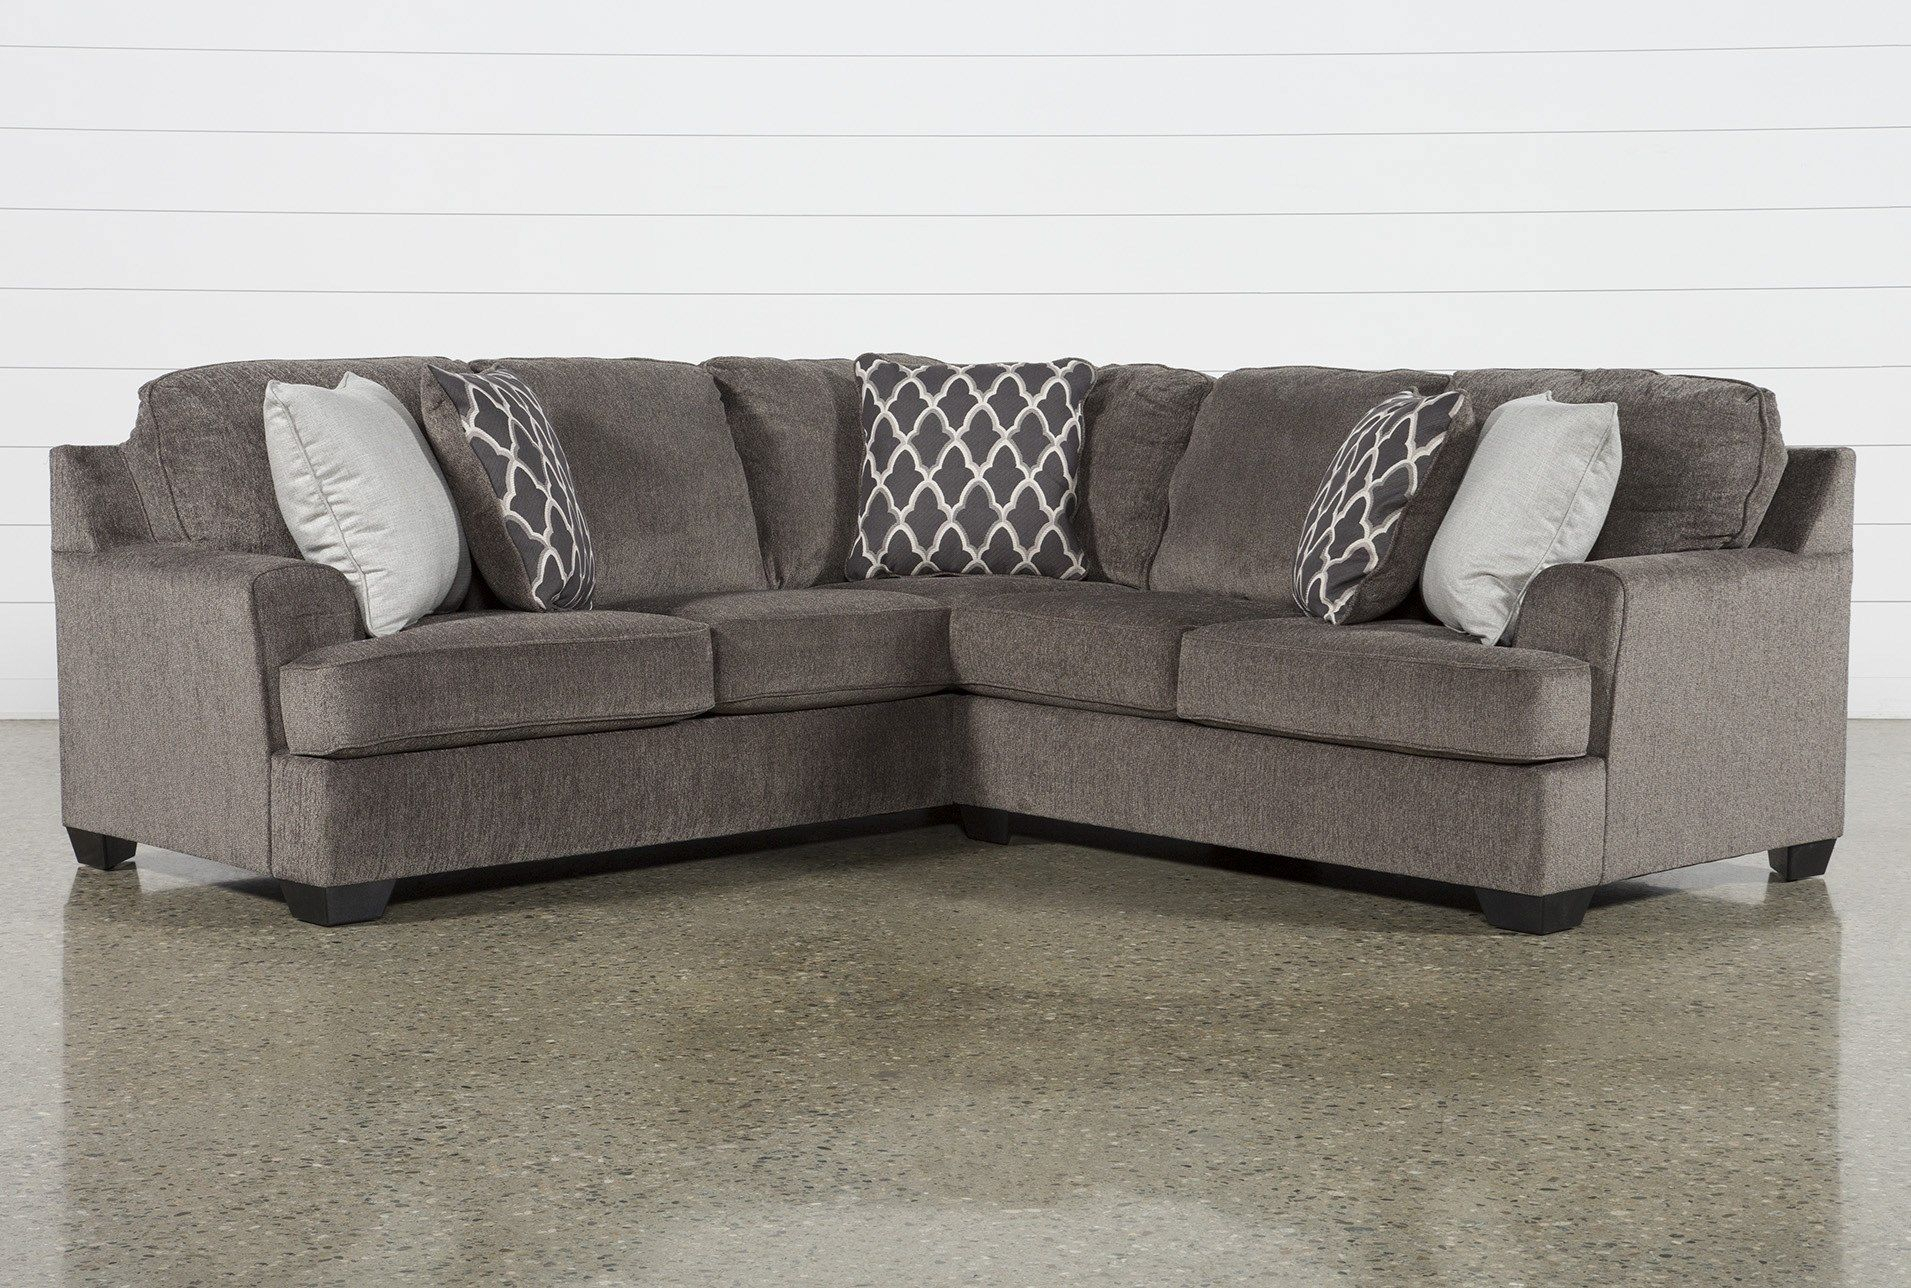 Devonwood 2 Piece Sectional With Right Arm Facing Loveseat Intended For Turdur 2 Piece Sectionals With Laf Loveseat (View 15 of 15)